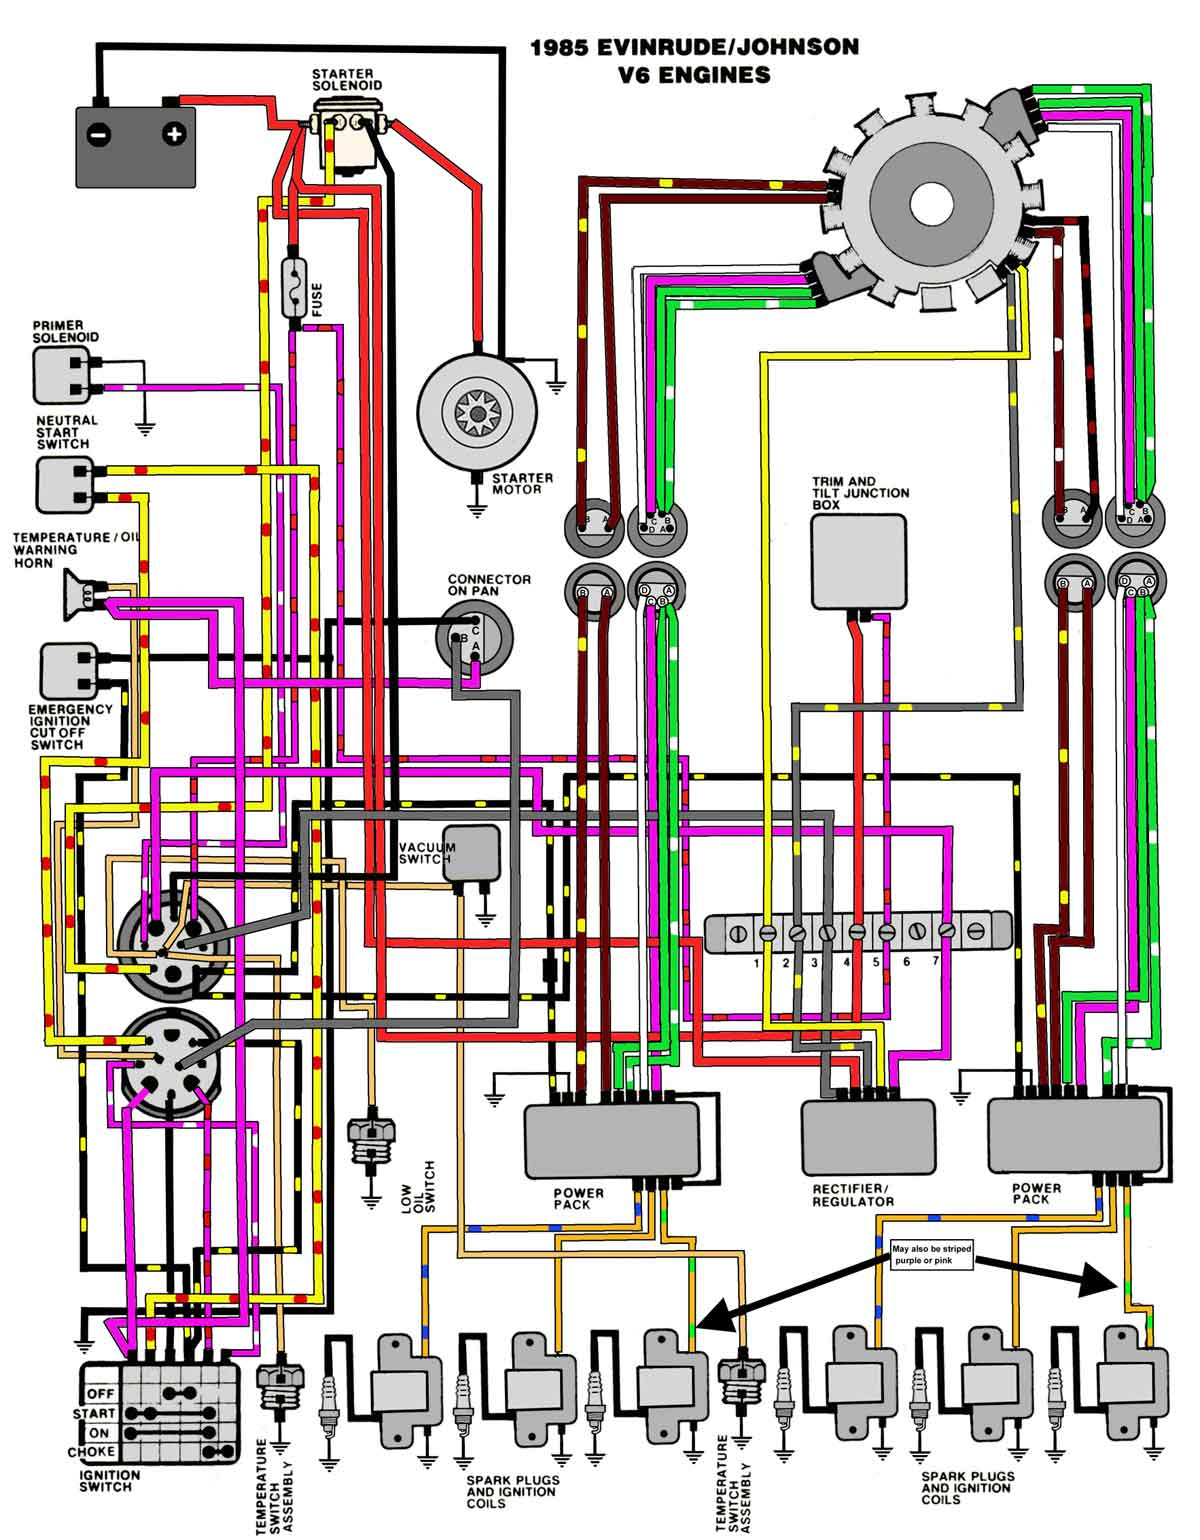 EVINRUDE JOHNSON Outboard Wiring Diagrams -- MASTERTECH MARINE -- on spark plug battery, spark plug bmw, spark plug fuse, spark plug plug, spark plug operation, ford ranger spark plug diagram, spark plug solenoid, spark plug wire, small engine cylinder head diagram, 2003 ford f150 spark plug numbering diagram, spark plugs for toyota corolla, 1998 f150 spark plugs diagram, 2000 camry spark plug diagram, spark plug relay, ford expedition spark plug diagram, spark plug index, spark plugs yamaha venture 1200, spark plug valve, 1999 gmc denali spark plug diagram, honda spark plugs diagram,